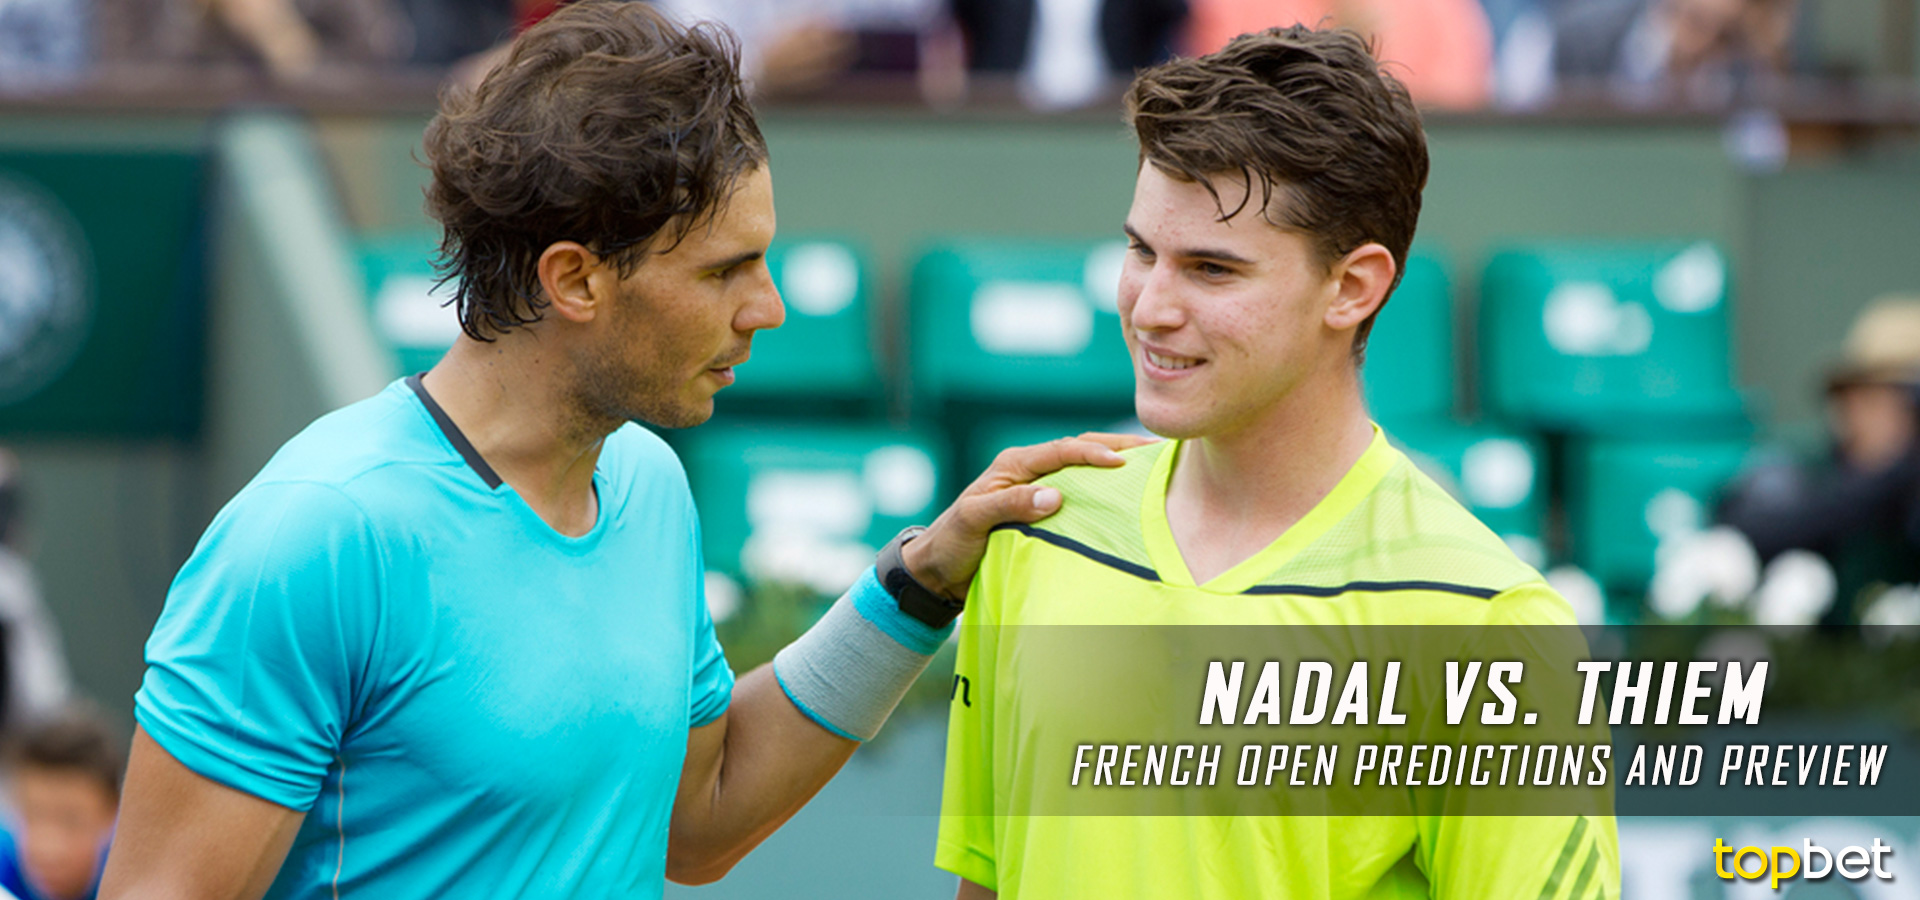 Nadal Vs Thiem Predictions Picks Odds 2017 French Open